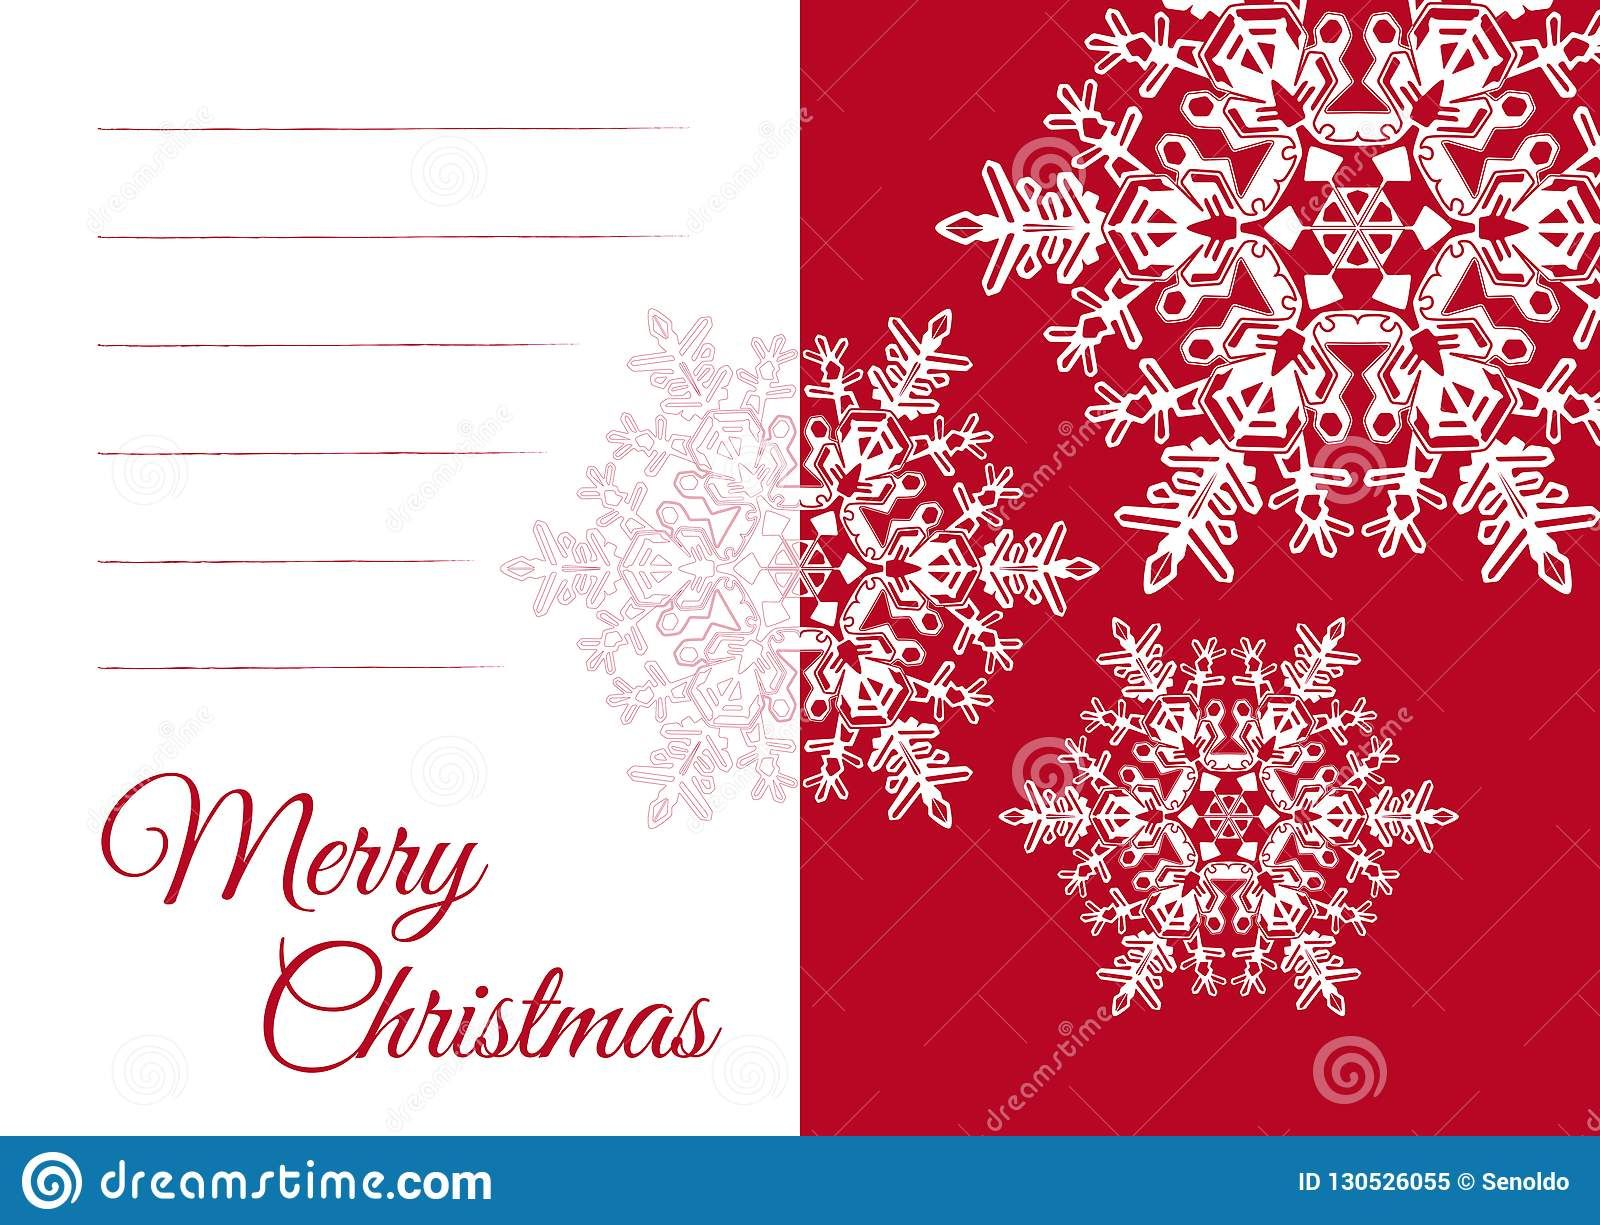 Christmas Greeting Card Template With Blank Text Field Stock Inside Blank Christmas Card Templates Free Best Template Ideas